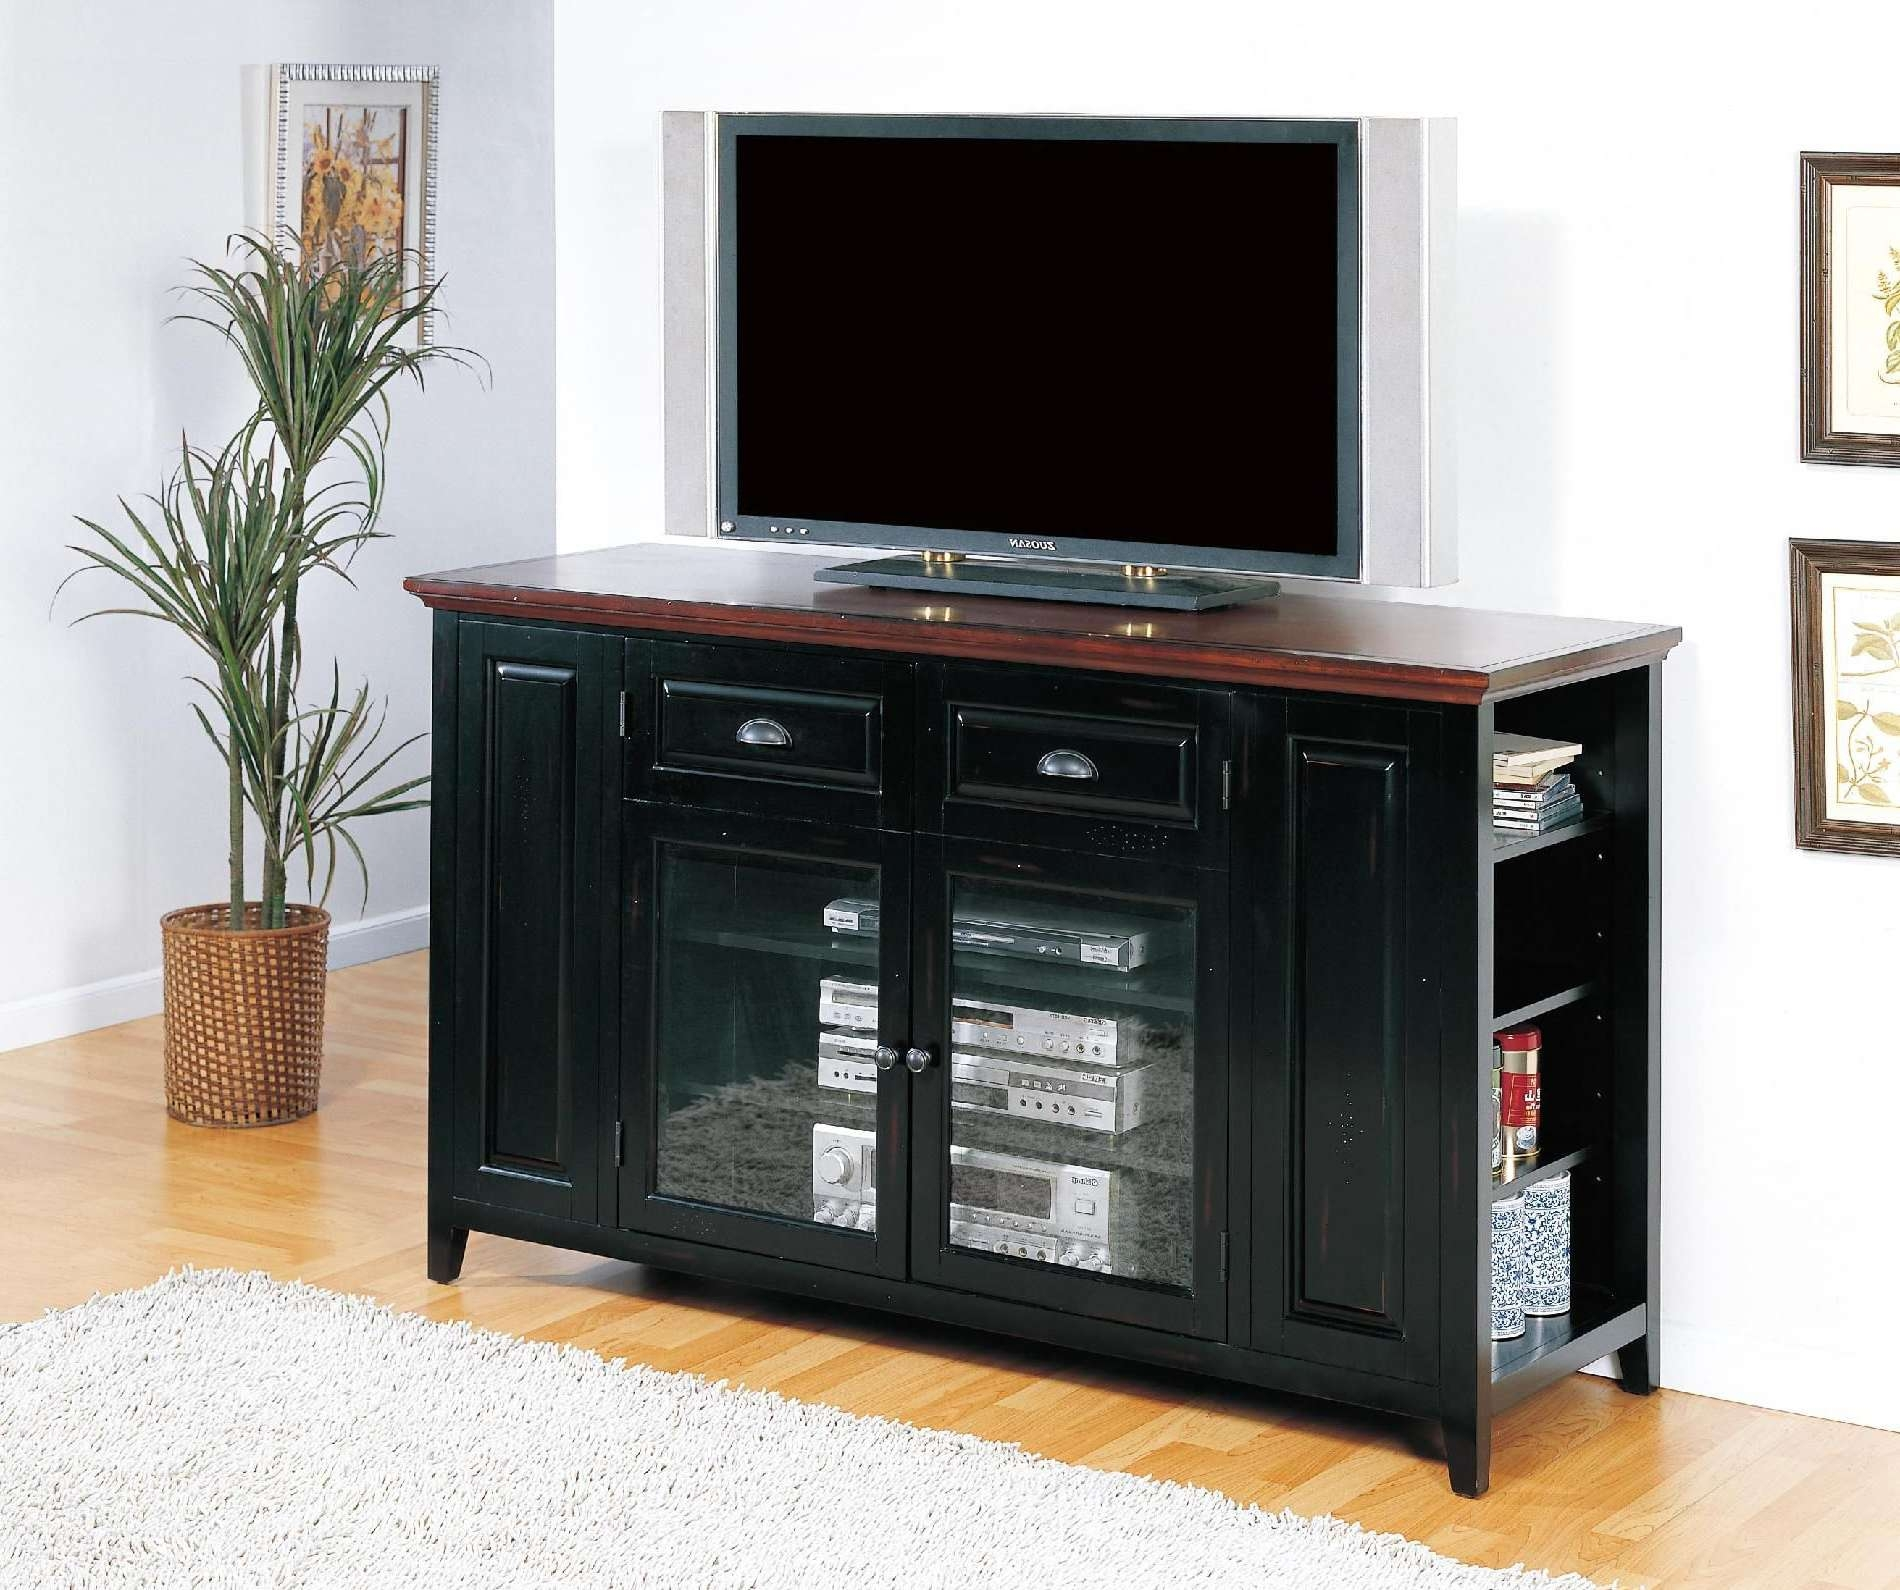 Retro Black Oak Wood Tv Stand With Glass Doors Of Tall Tv Stands For Tall Black Tv Cabinets (View 2 of 20)